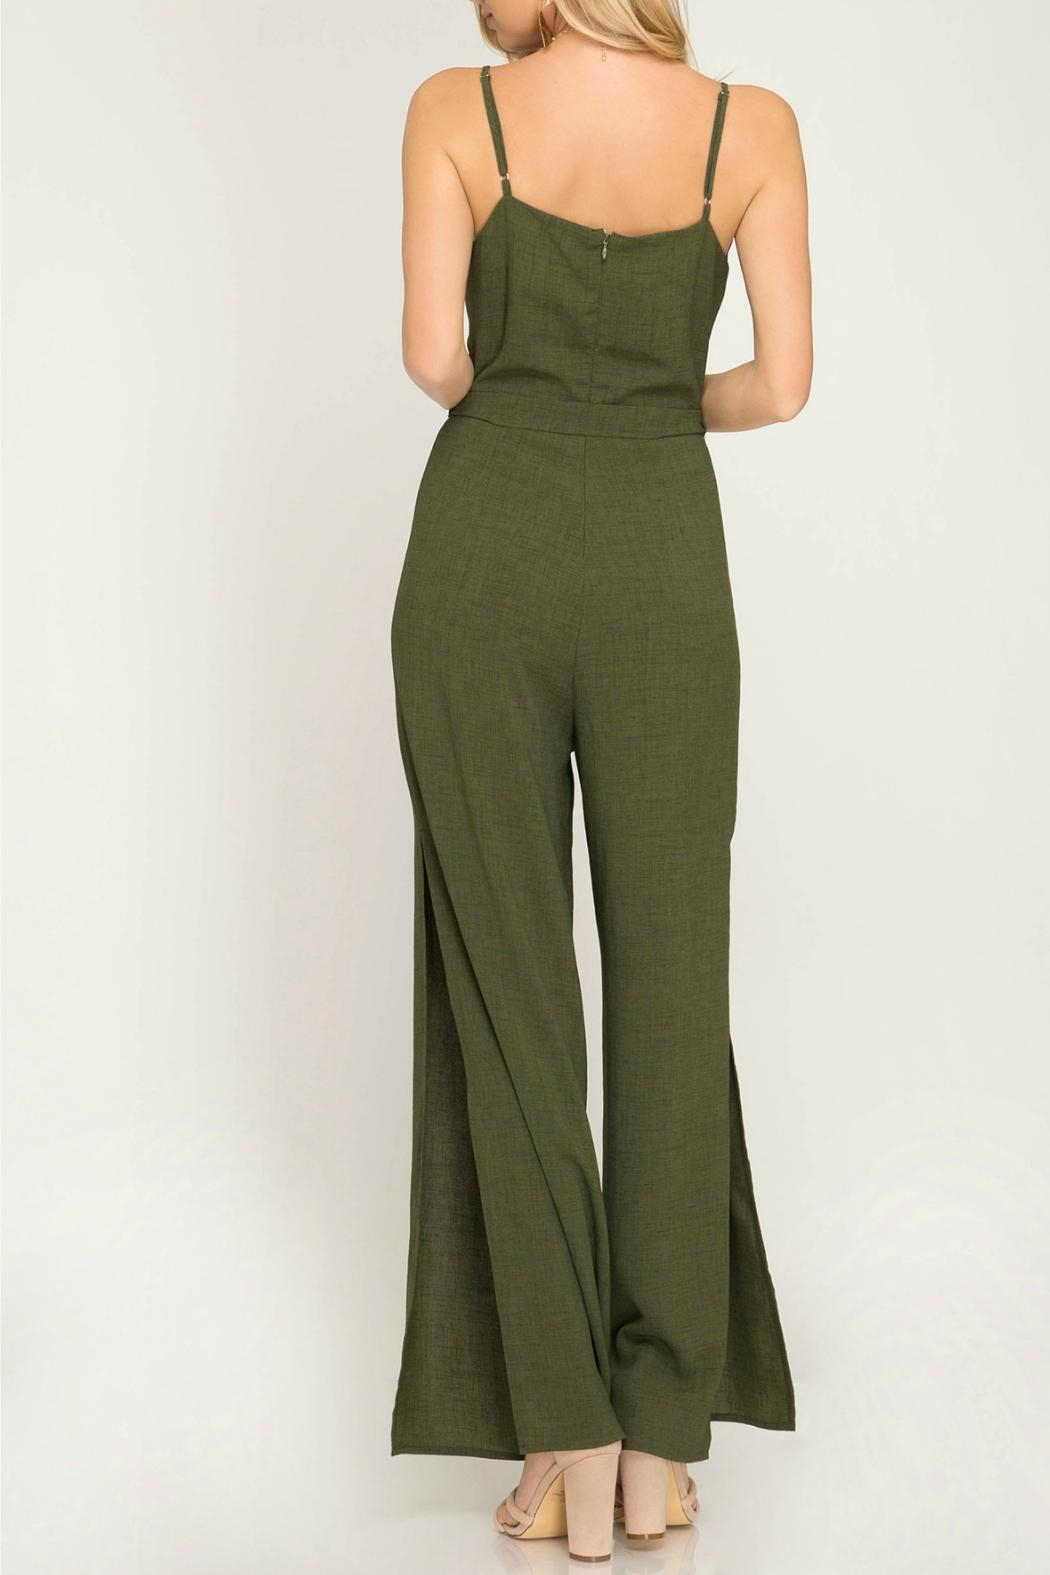 She + Sky Cherice Olive Jumpsuit - Front Full Image